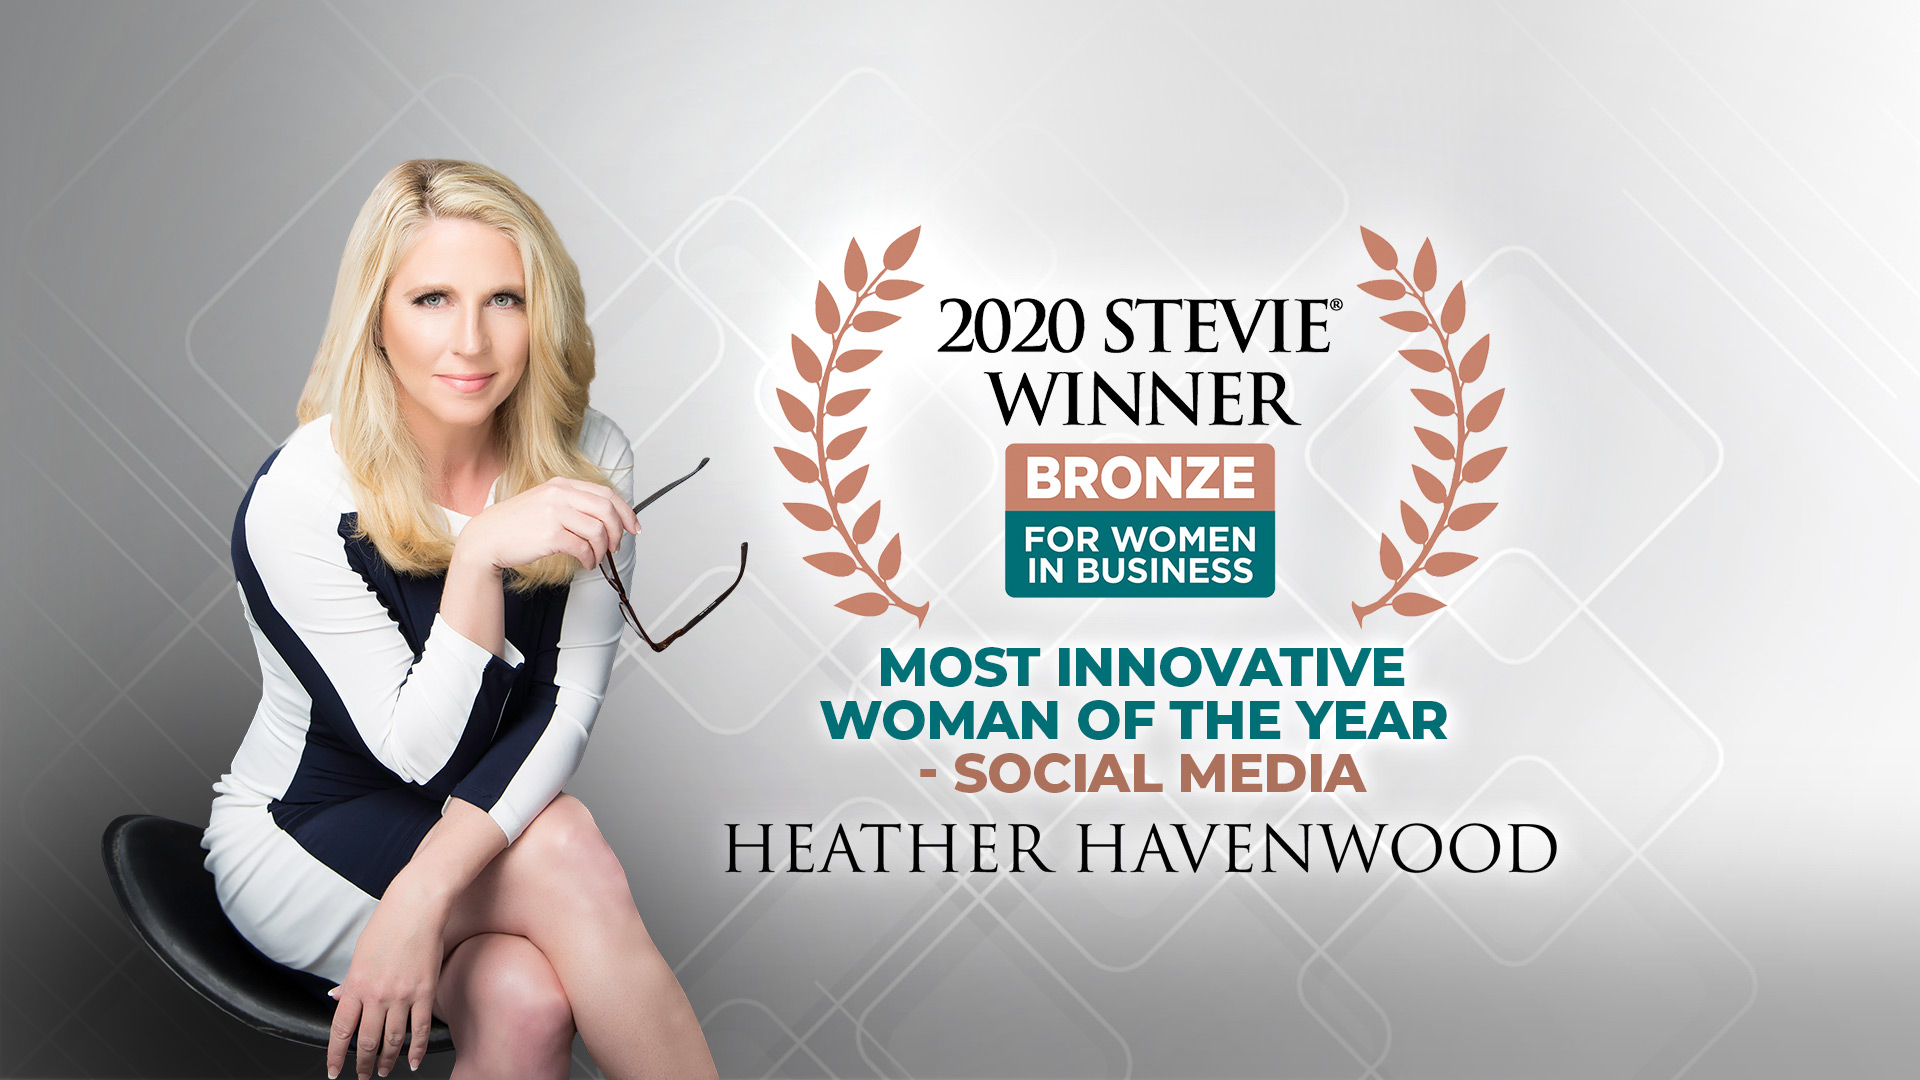 Heather Havenwood Stevie Award Most Innovative Woman of the Year 2020